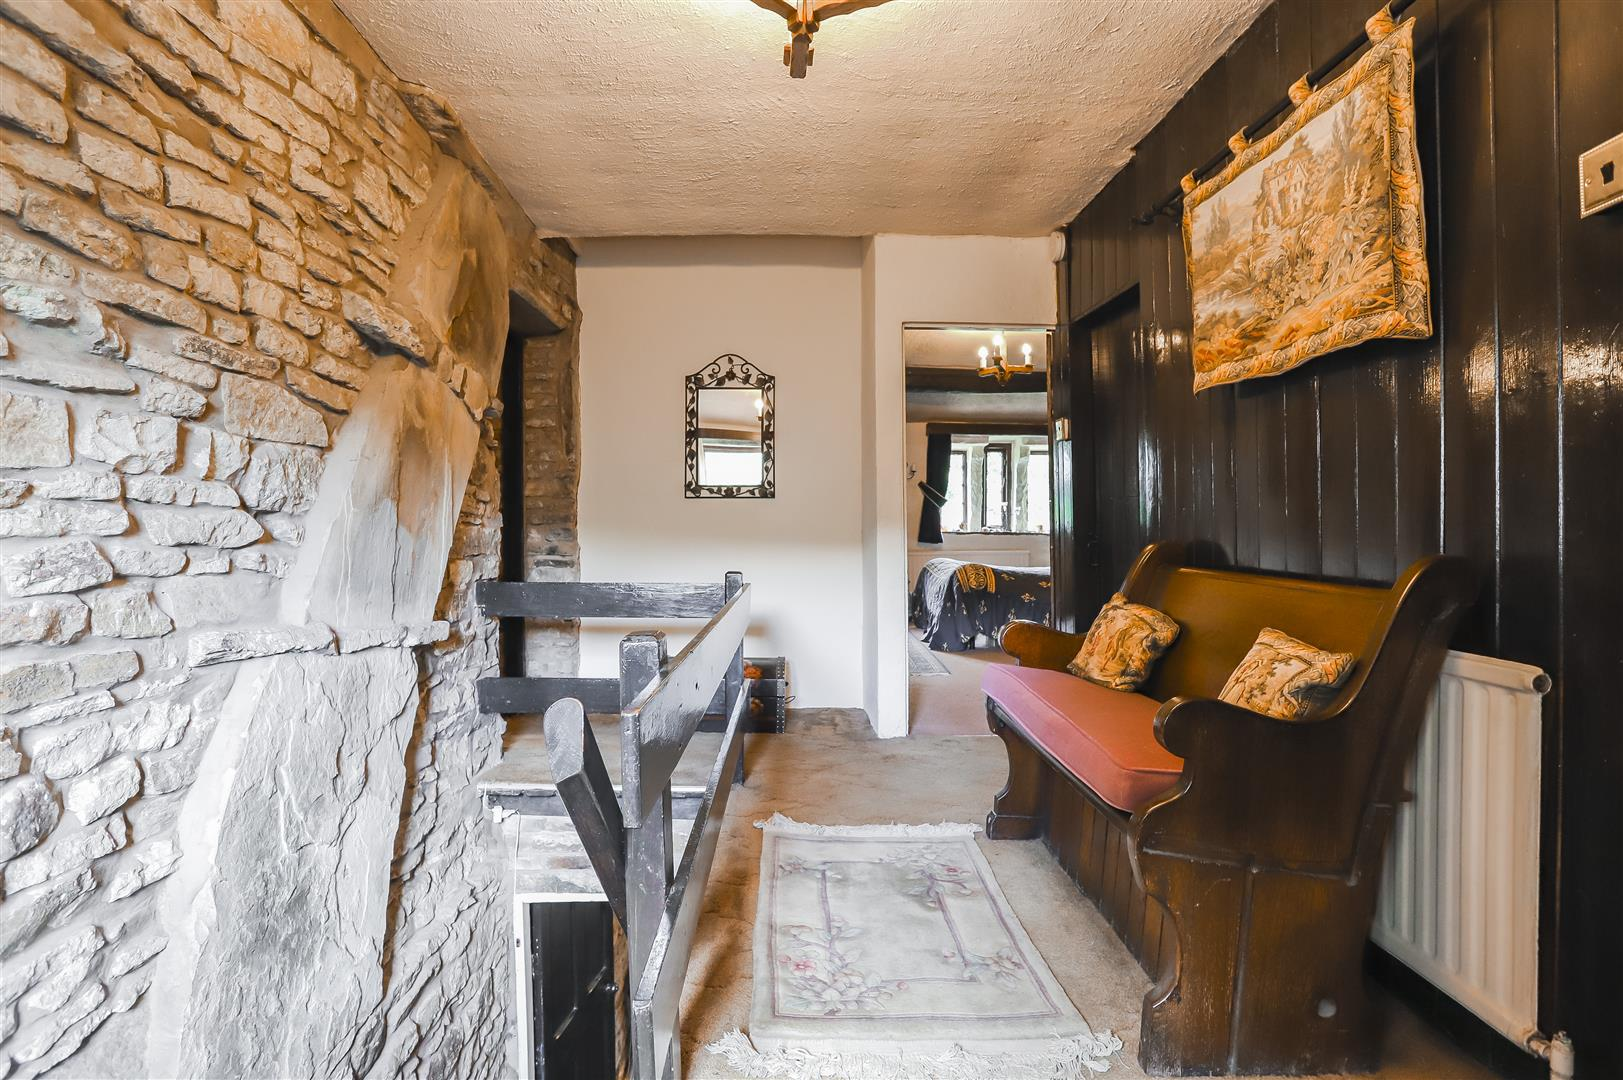 3 Bedroom House For Sale - Image 78